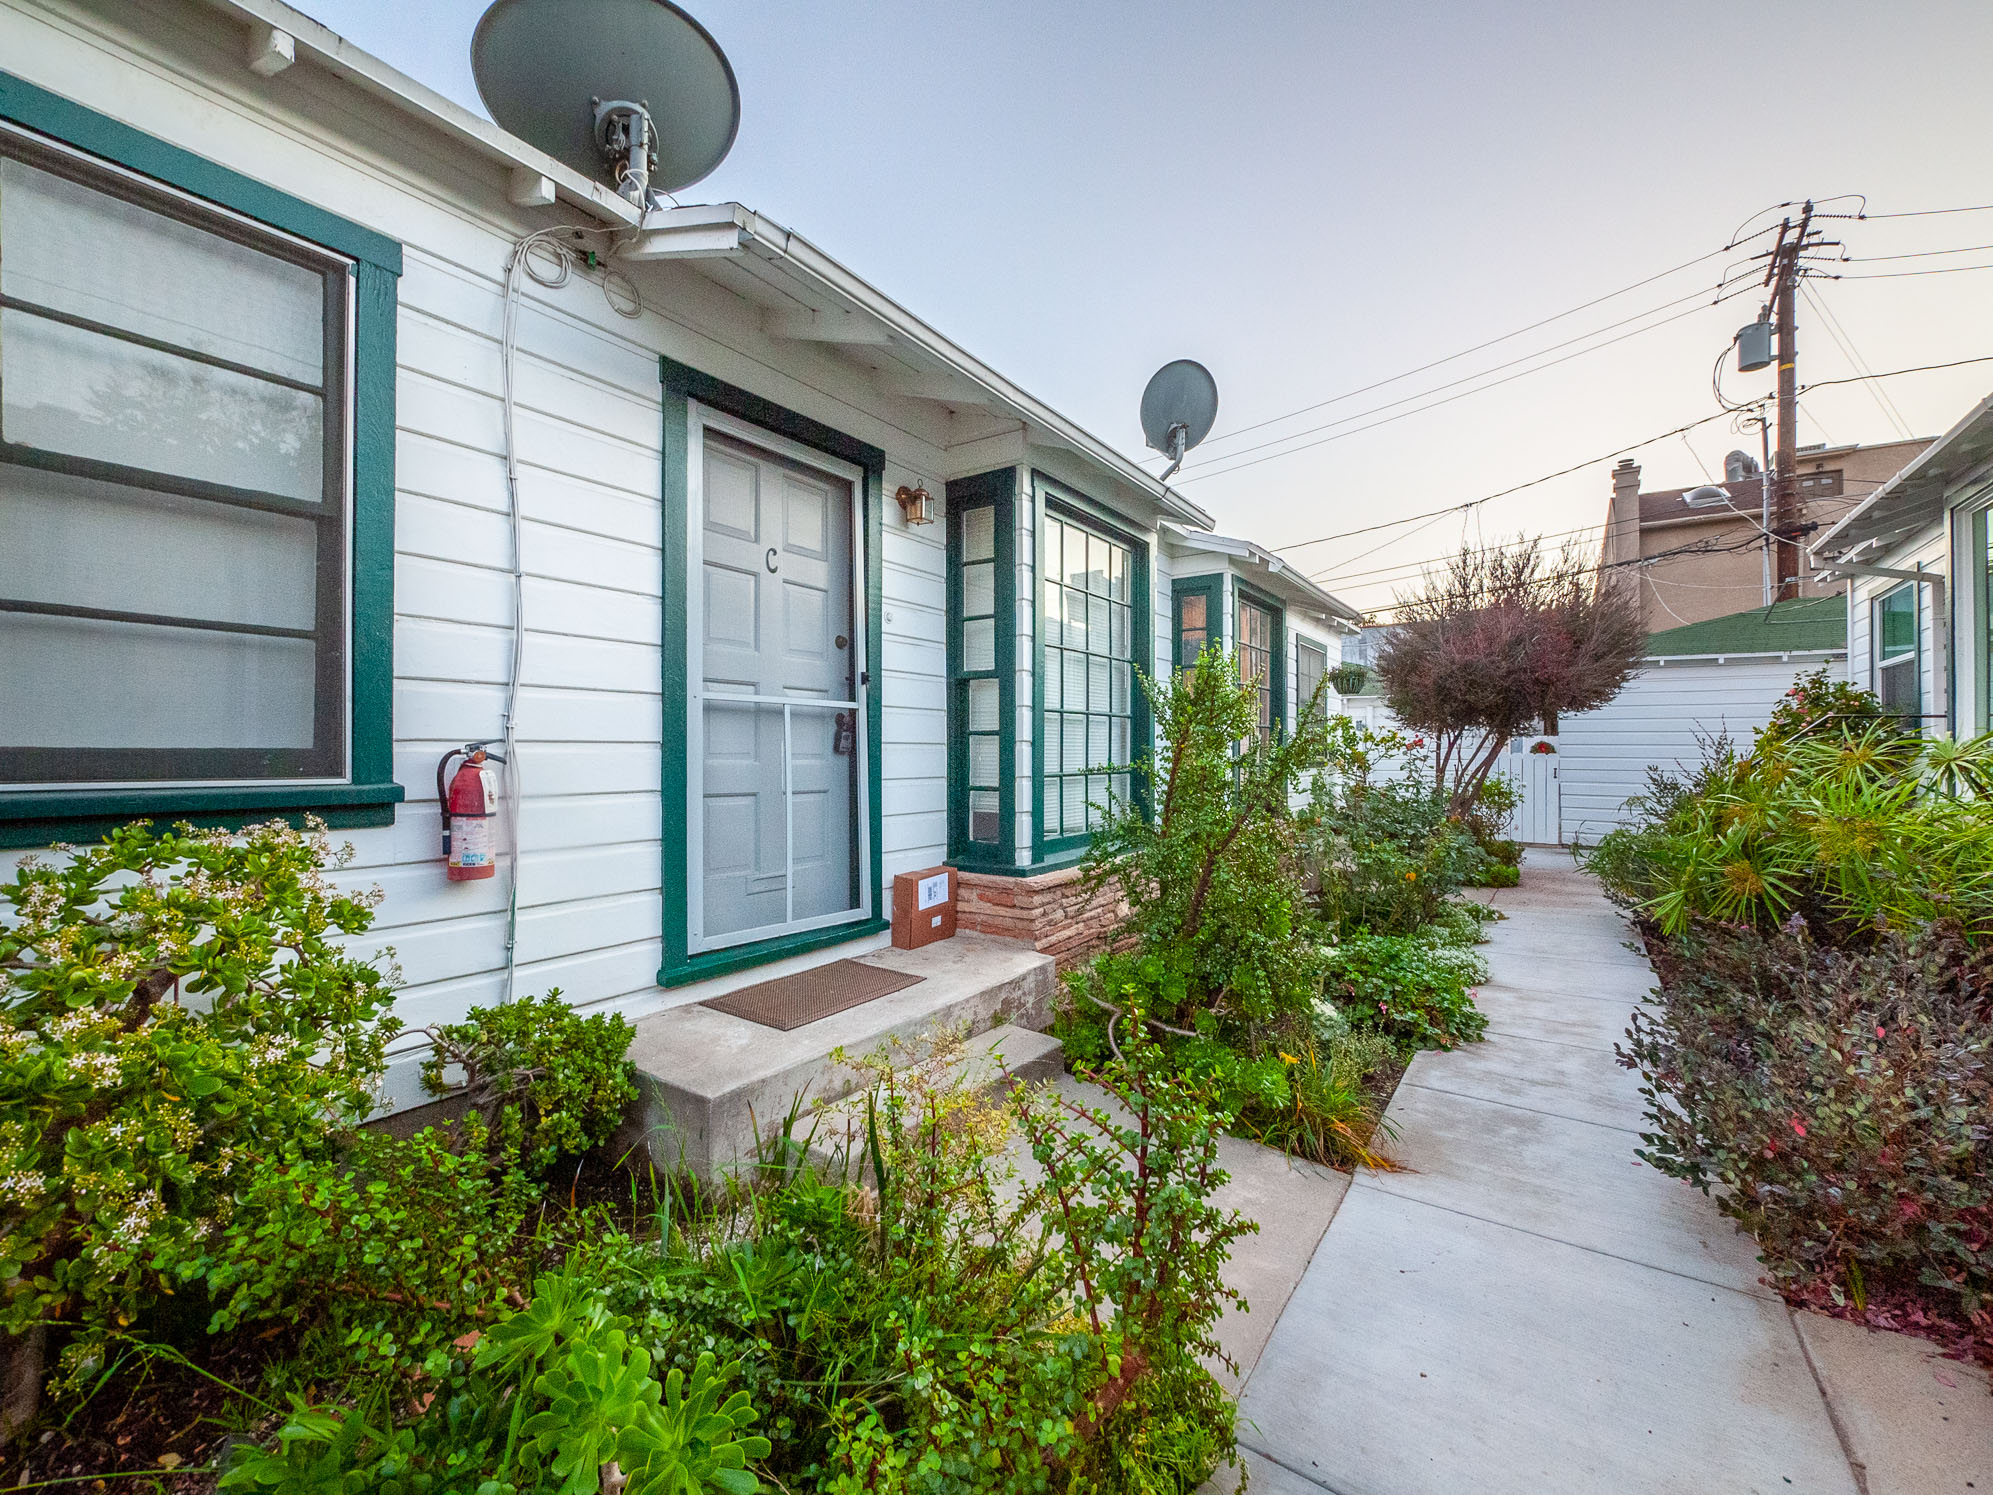 Charming 1 Bedroom Bungalow Located In Central Santa Monica!